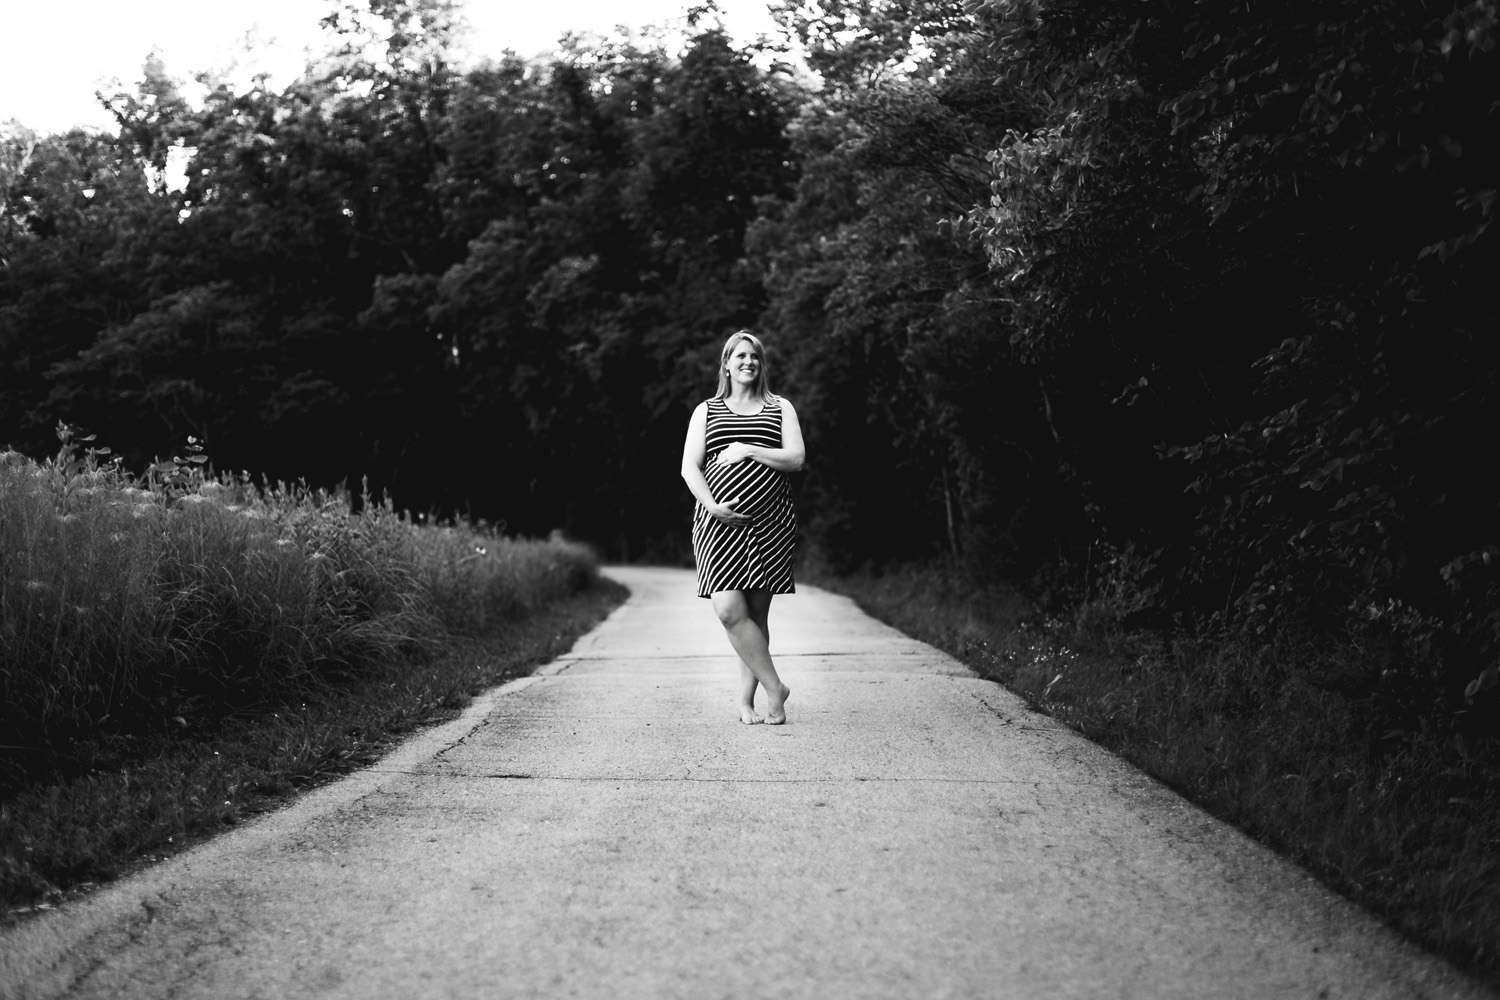 Maternity portrait photography, Ernie Miller Nature Center, Olathe Kansas. Renee McDaniel Photography, Manhattan Kansas